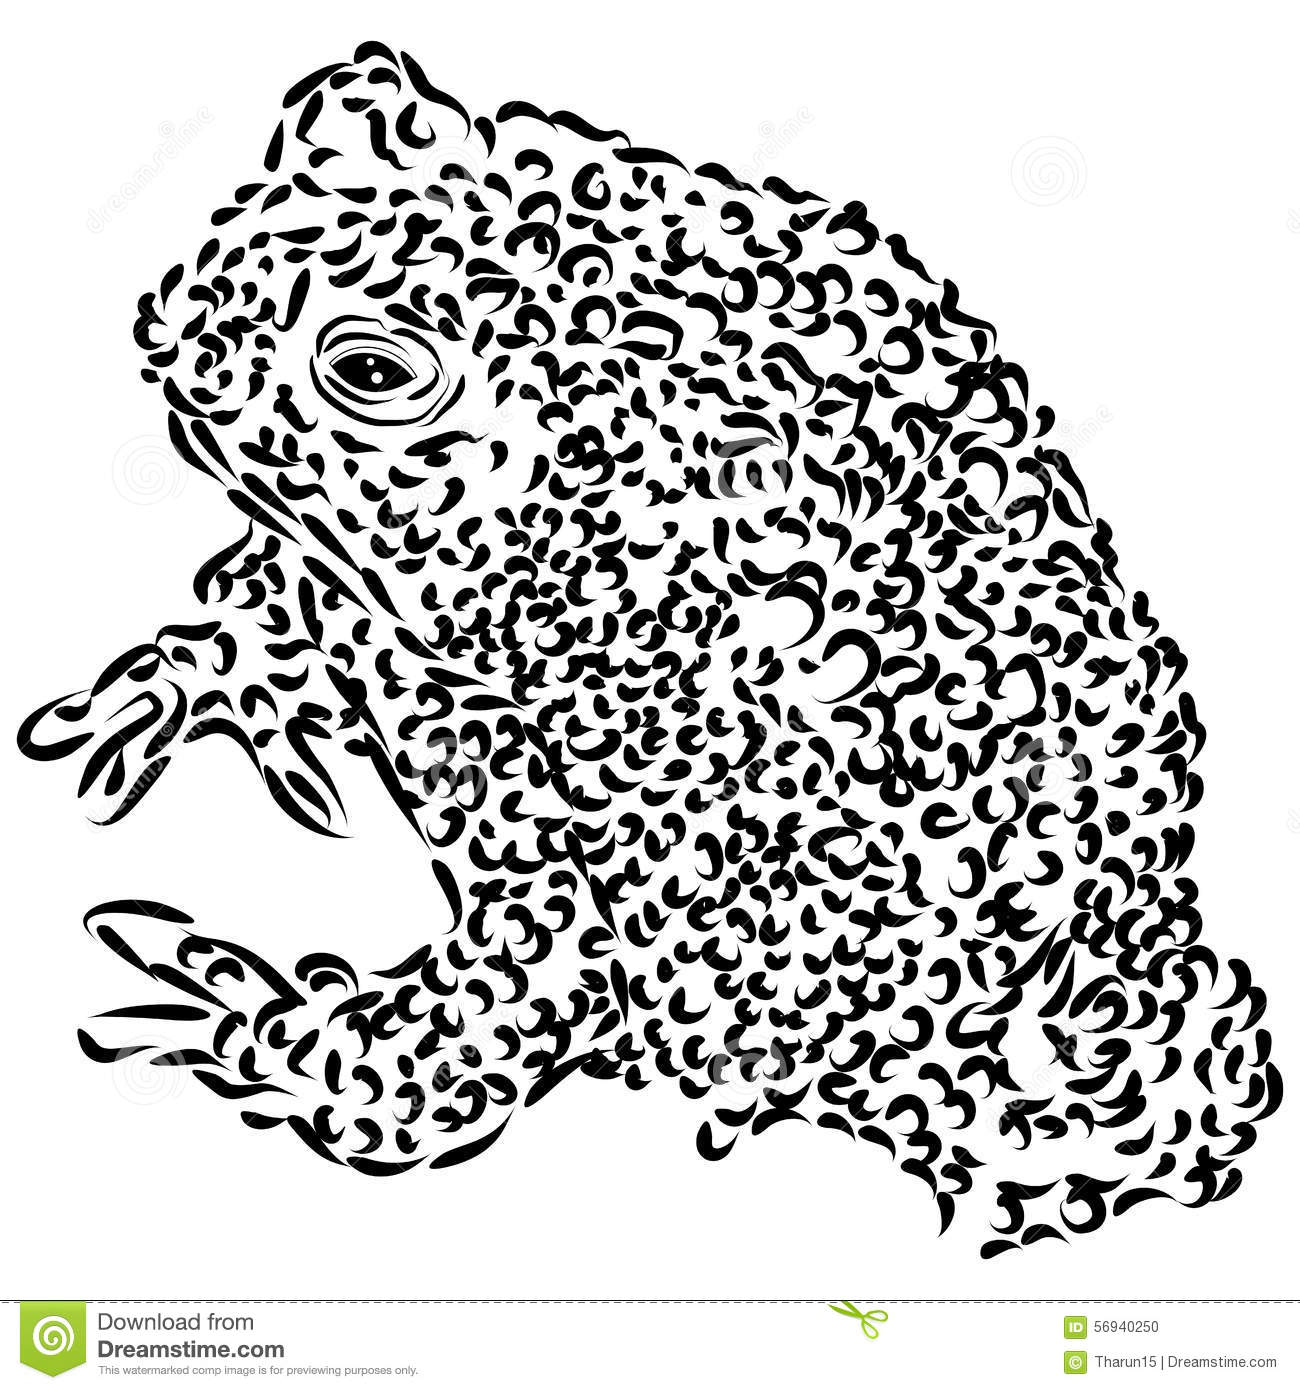 Line Drawings Of Endangered Animals : Line drawing of wyoming toad stock illustration image